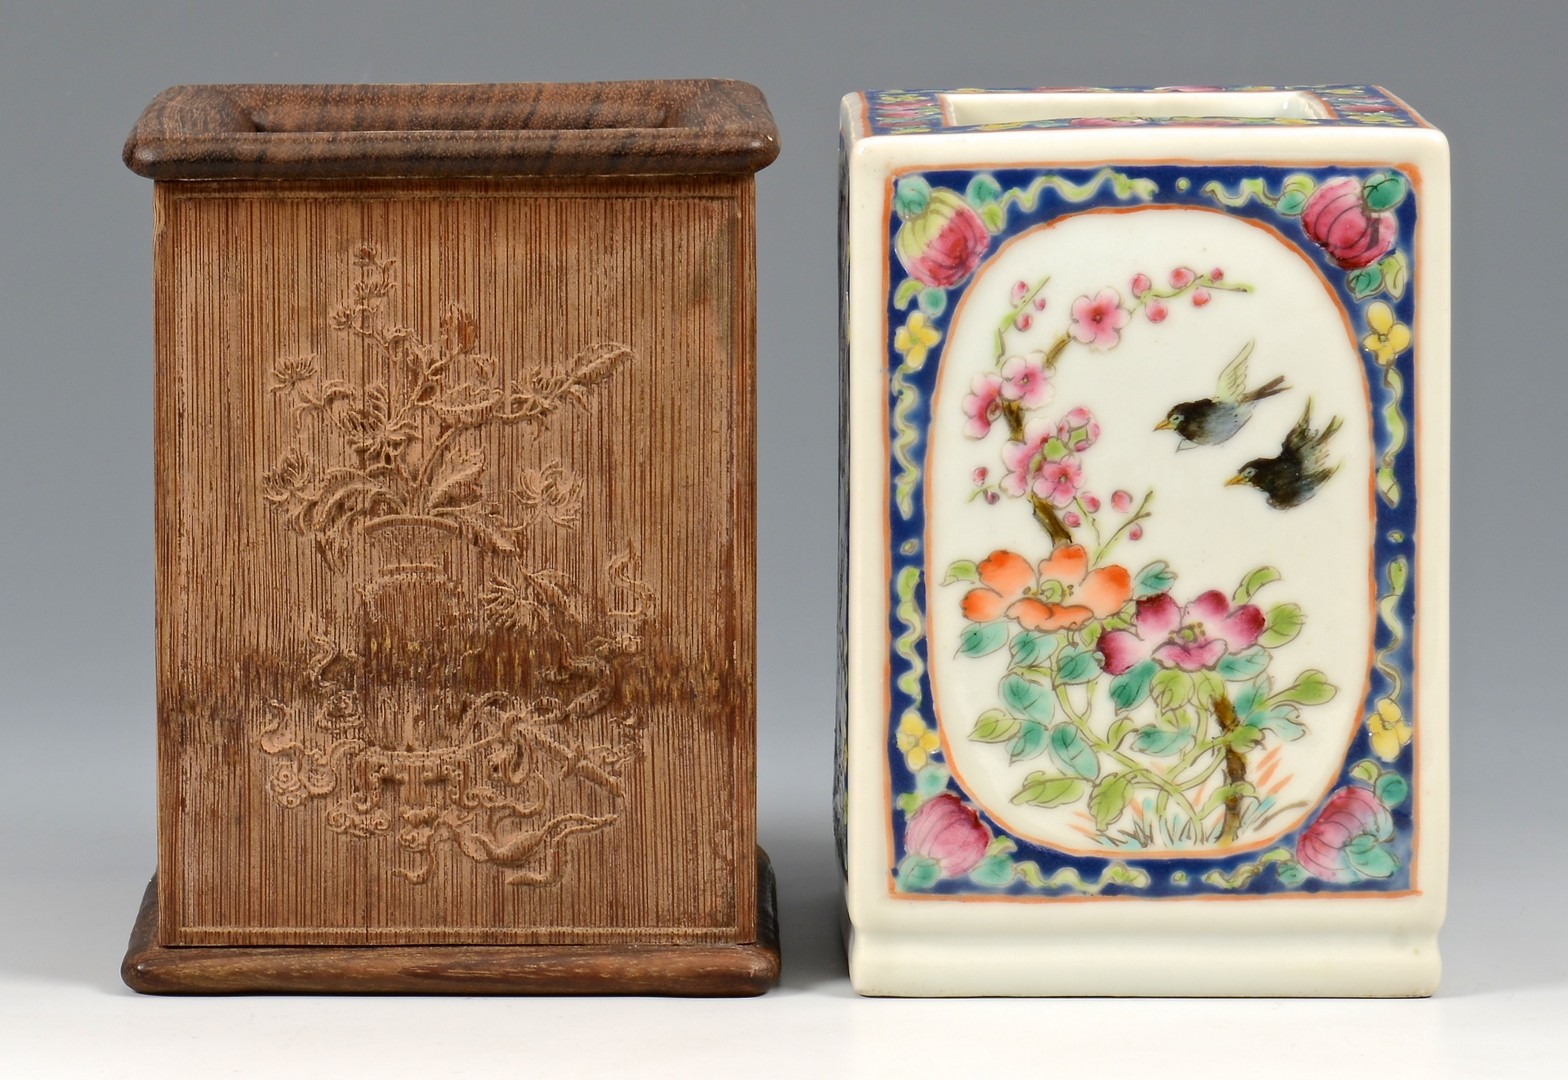 Lot 3832380: 6 Chinese Scholar's Items